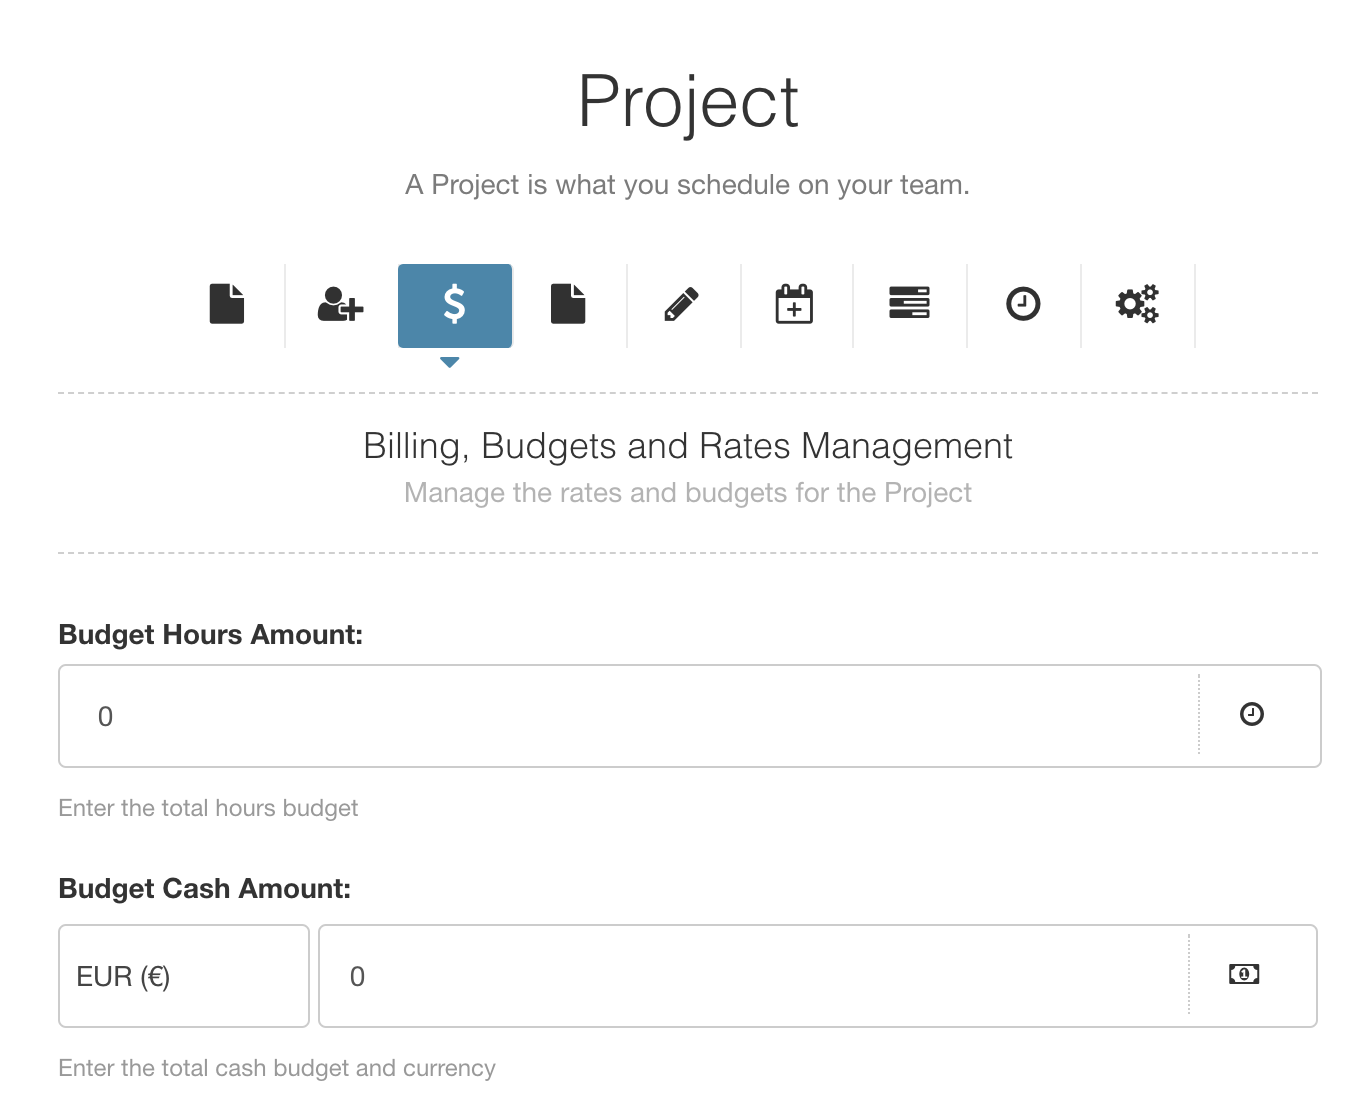 project budget rates hub planner